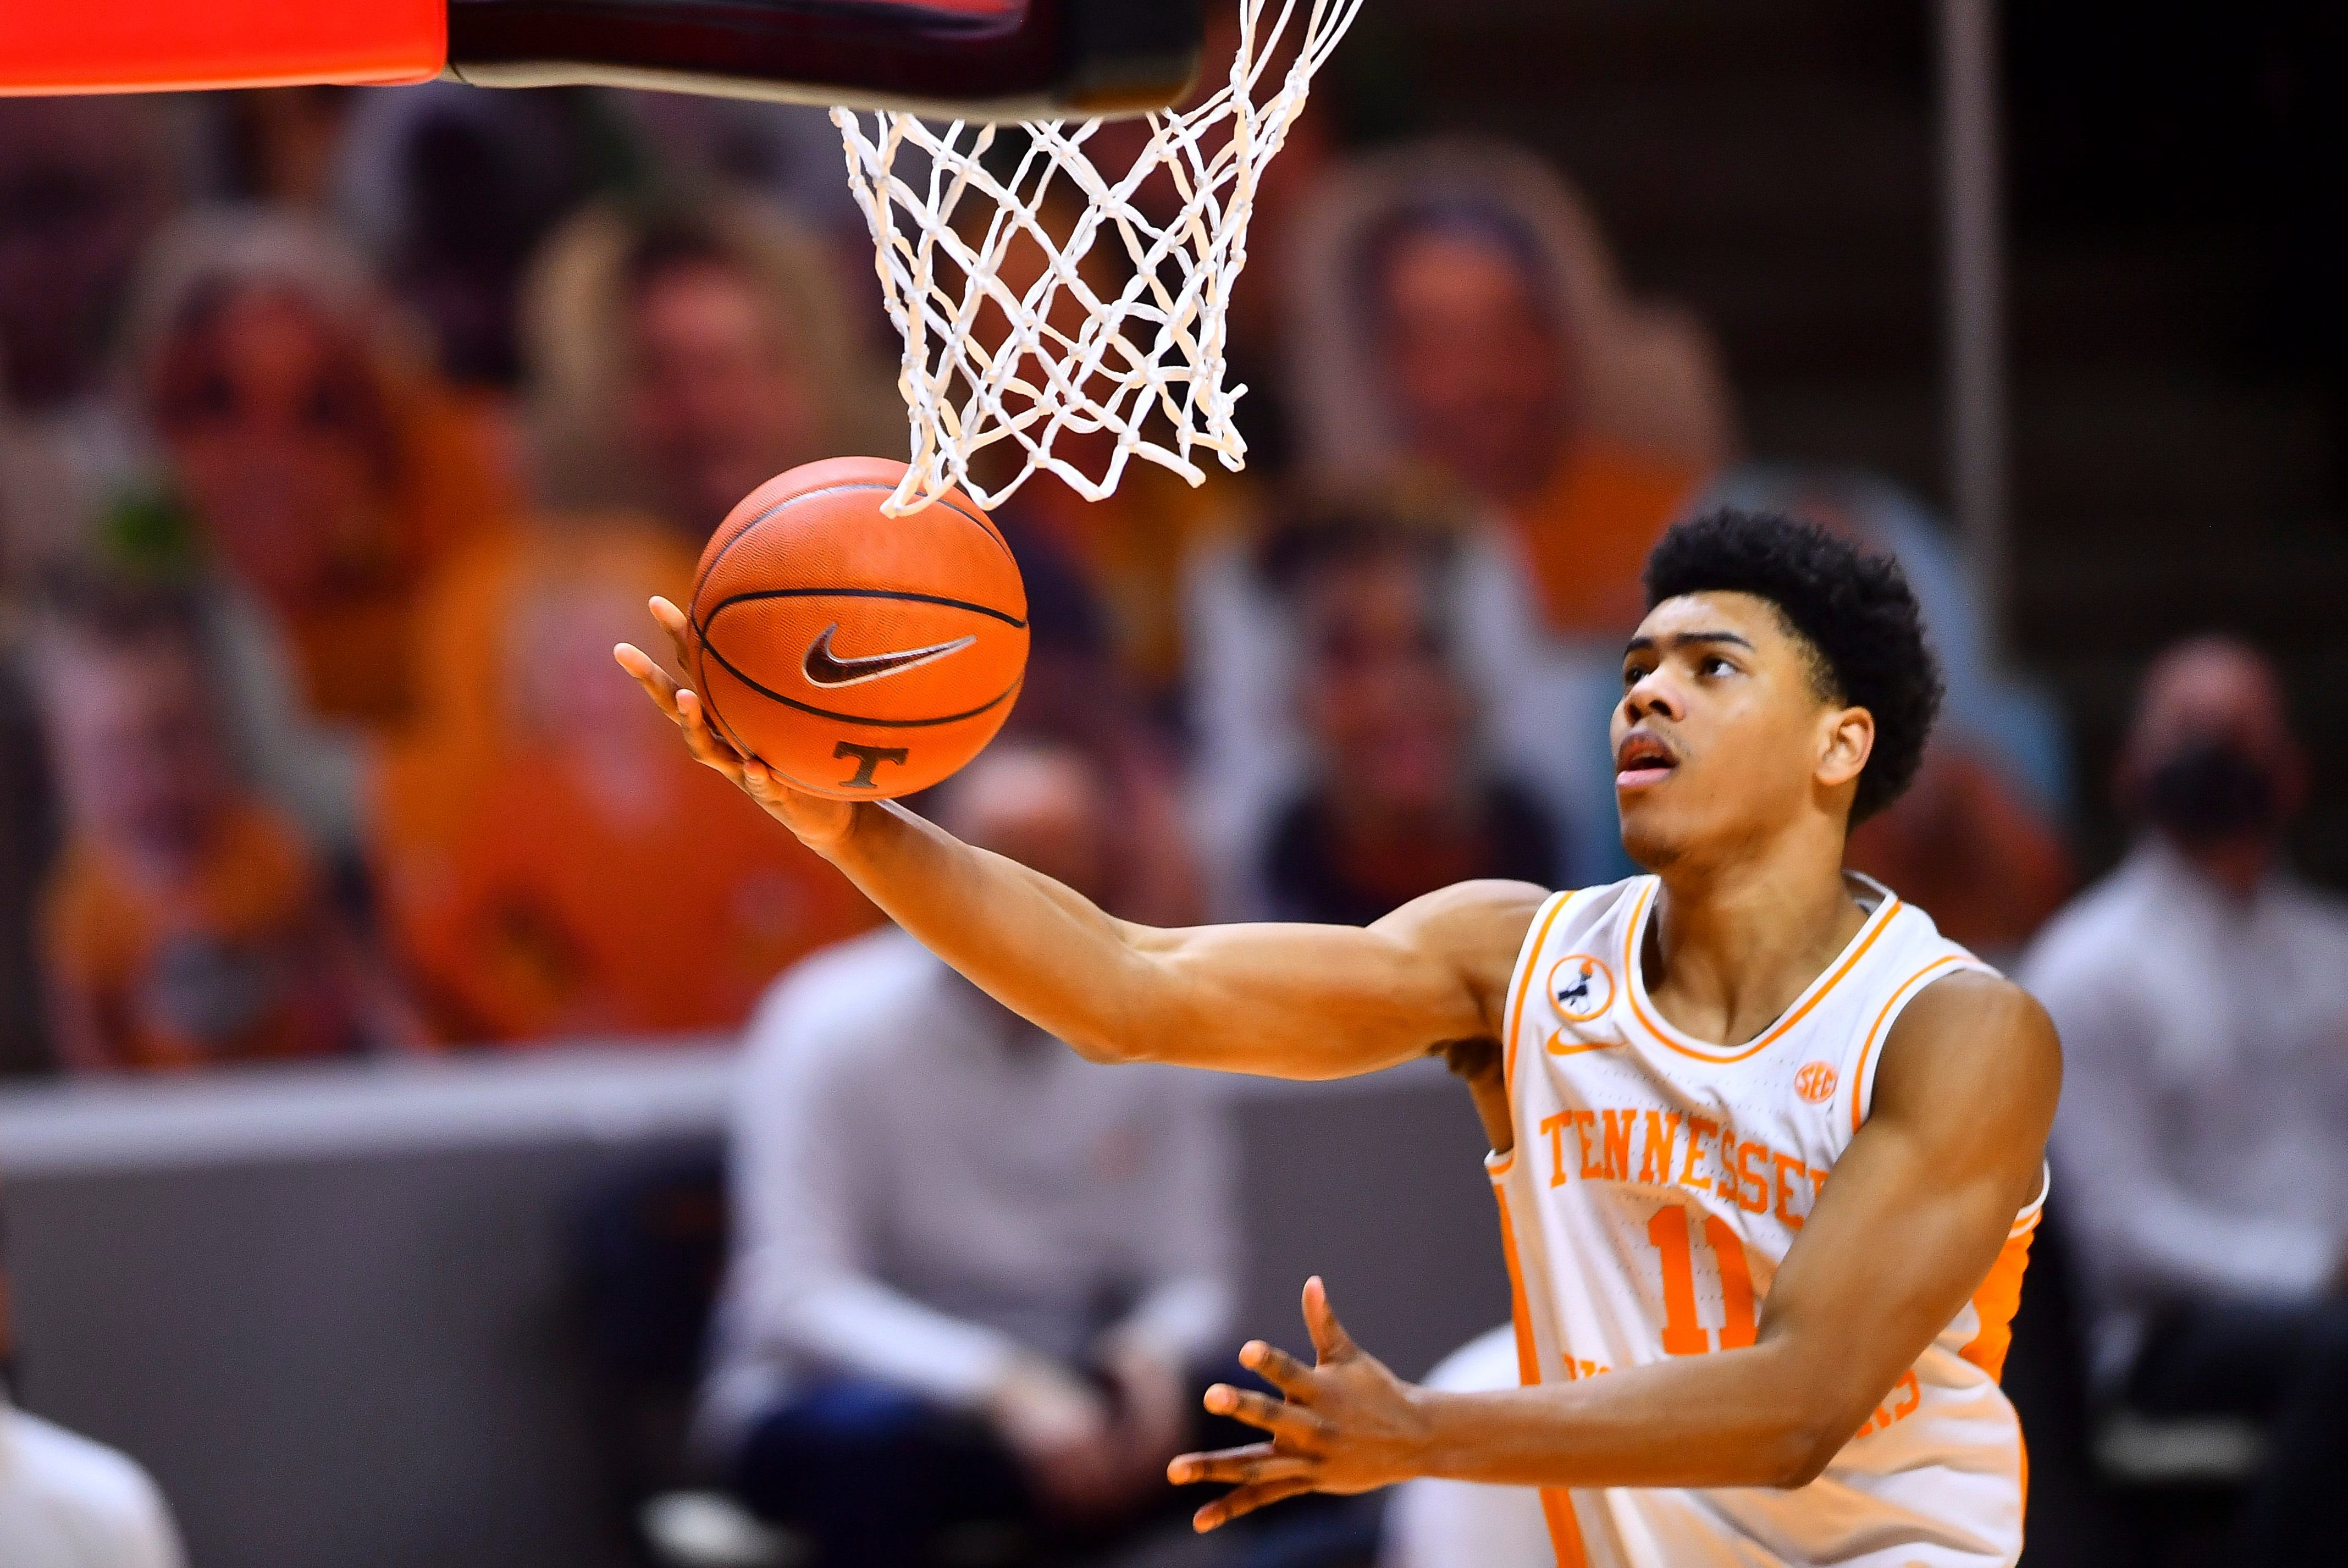 Tennessee guard Jaden Springer (11) takes a shot during a basketball game between the Tennessee Volunteers and the South Carolina Gamecocks at Thompson-Boling Arena in Knoxville, Tenn., on Wednesday, February 17, 2021.